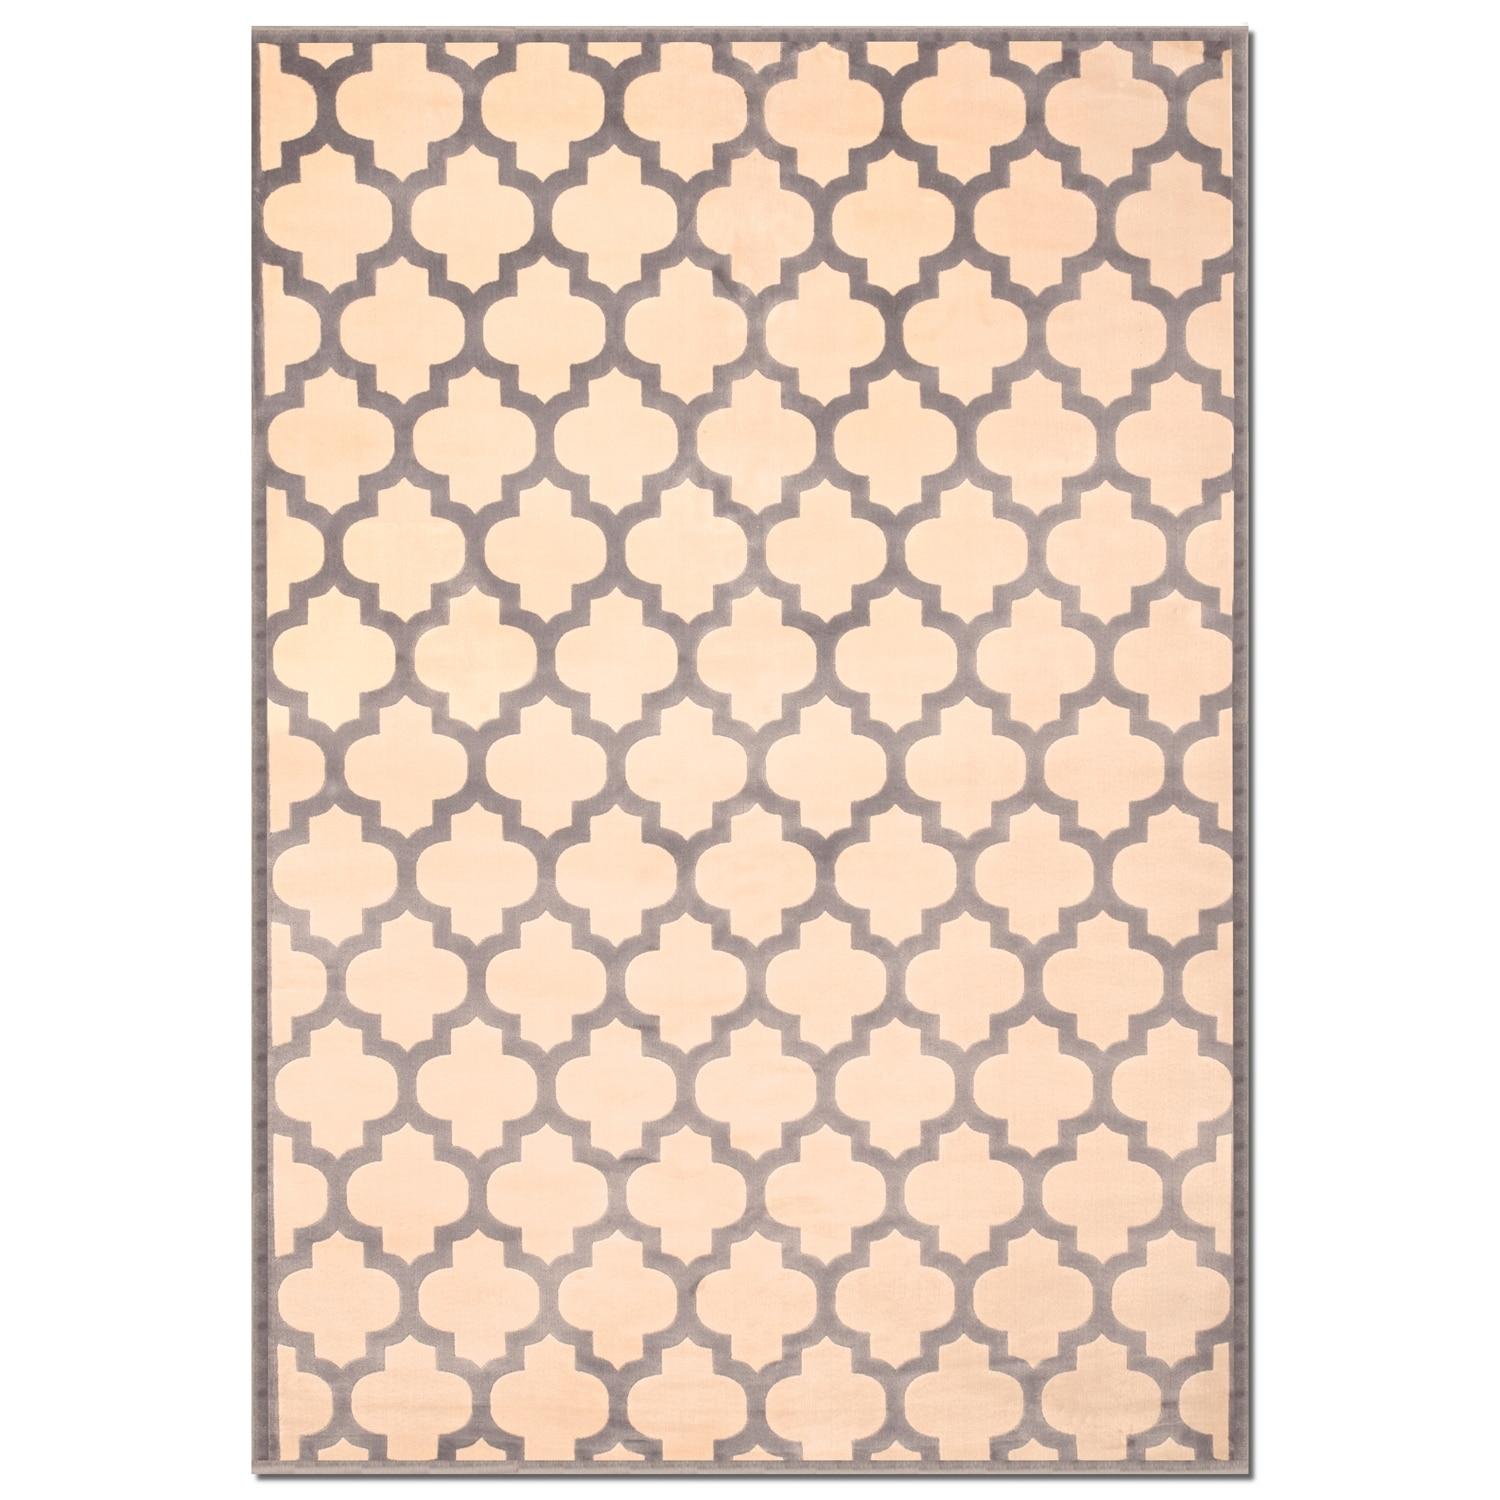 Rugs - Sonoma Greek Key Area Rug (8' x 10')